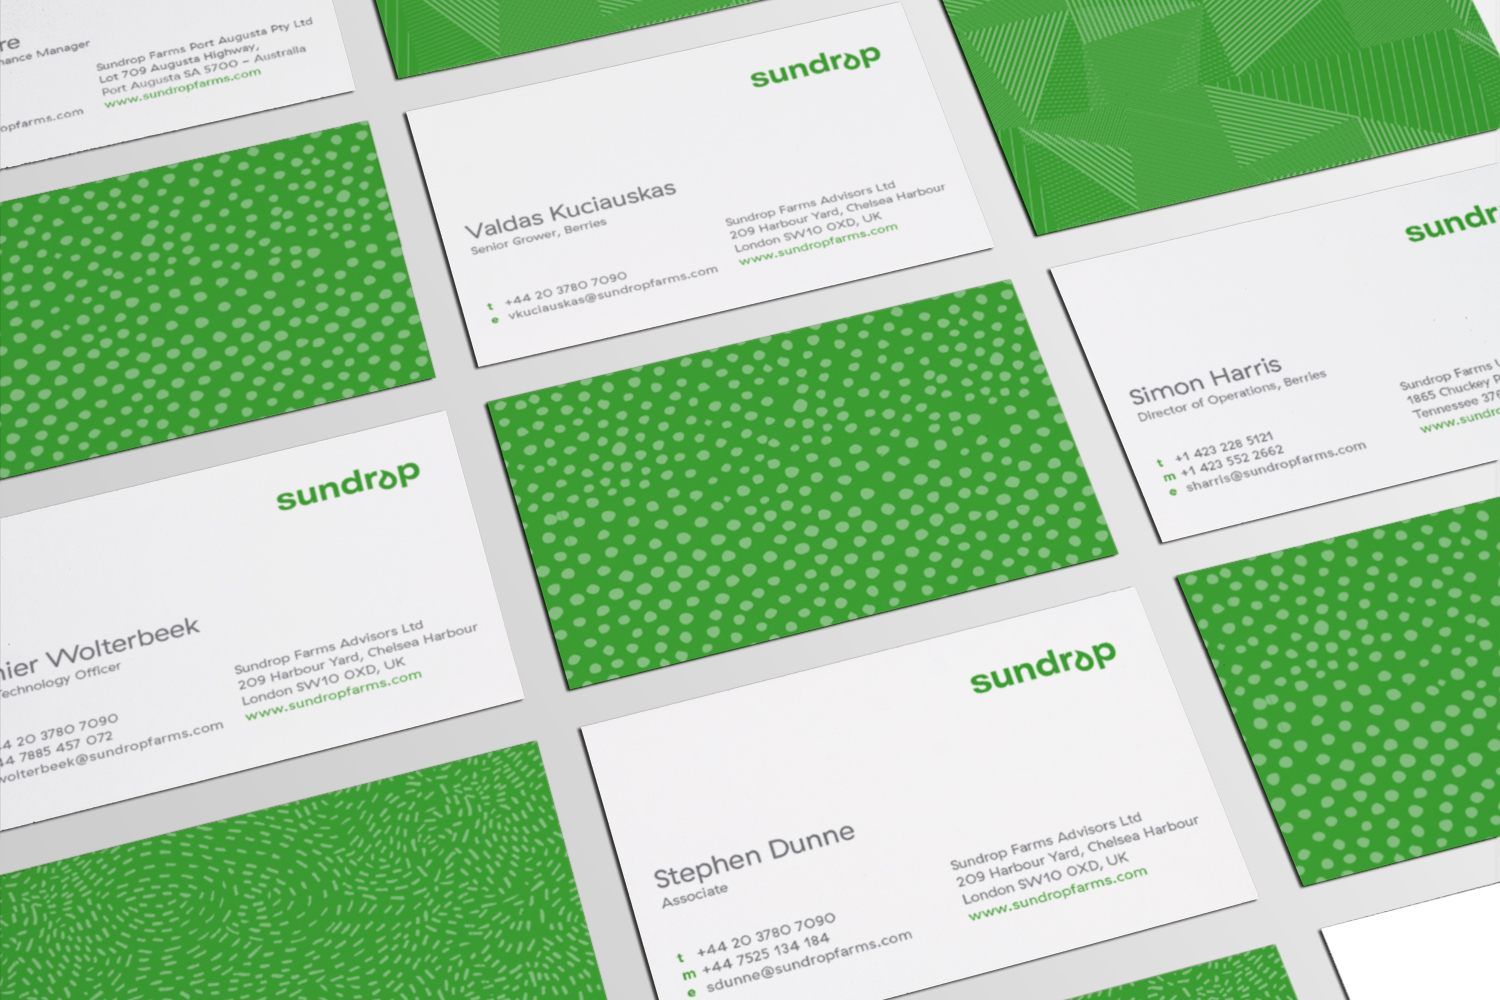 4-sundrop-bcards-all-1500x1000